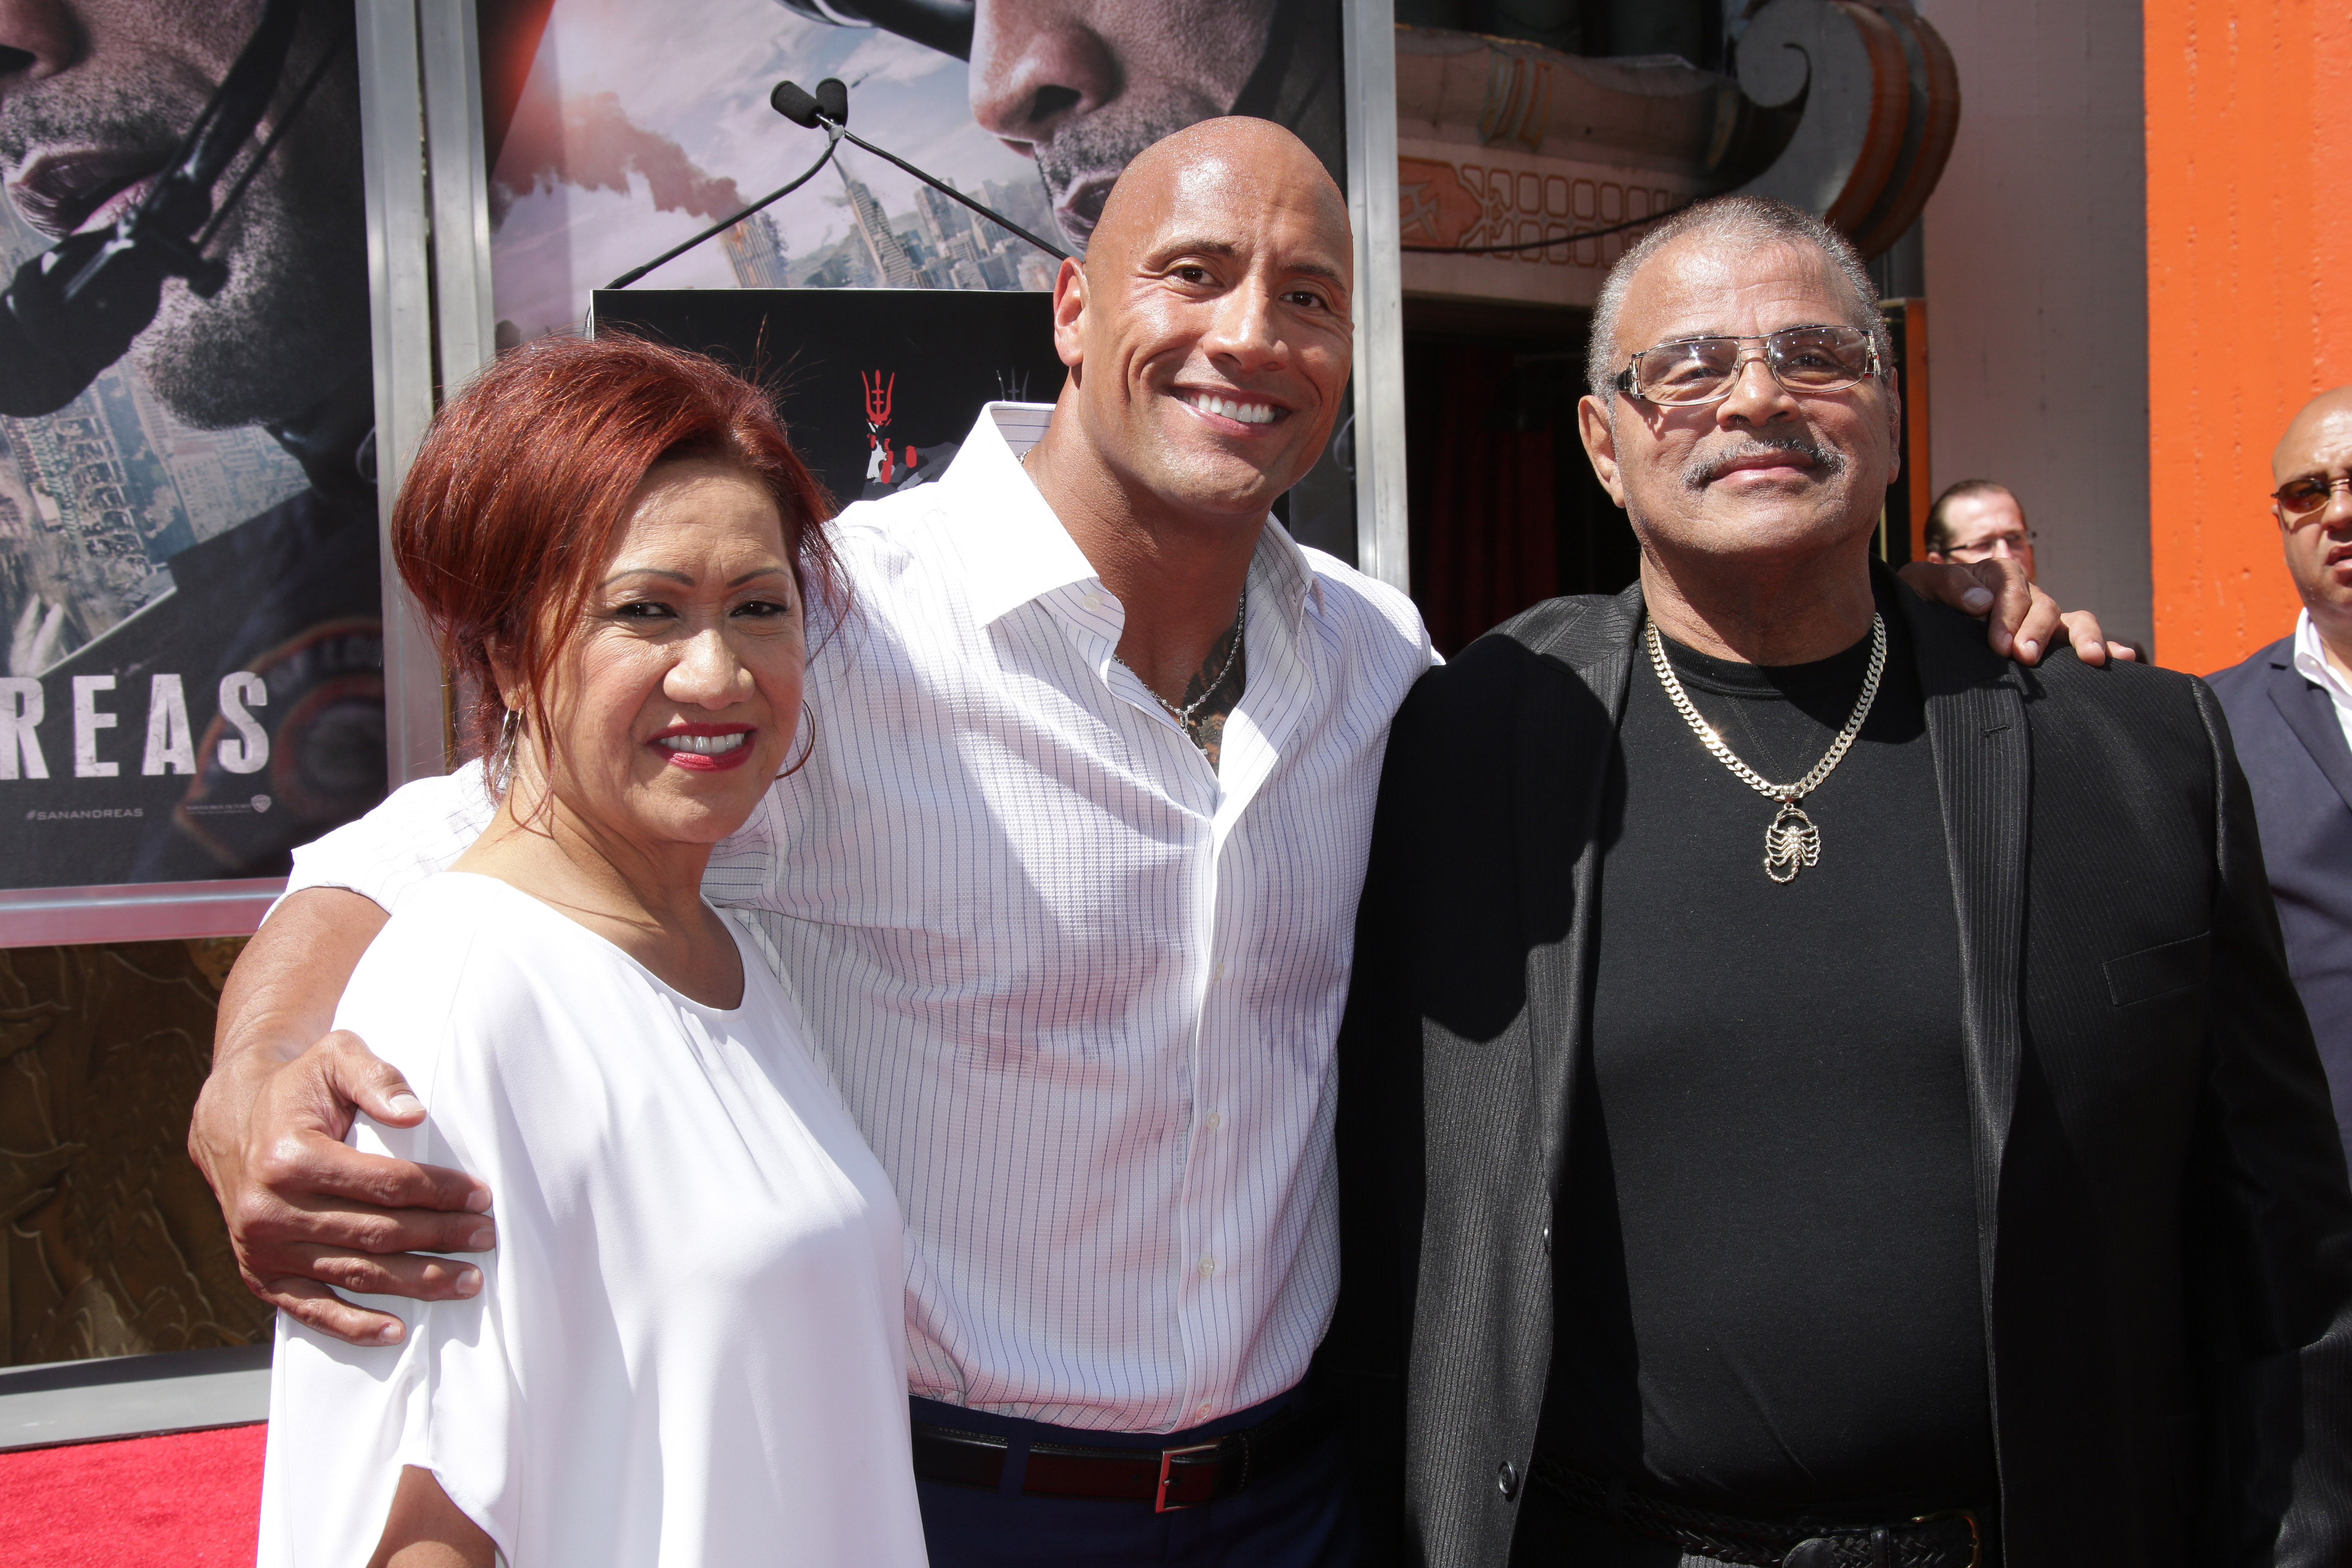 Mandatory Credit: Photo by Jim Smeal/BEI/Shutterstock (4779433aq) Dwayne Johnson with Parents Ata Johnson and Rocky Johnson Dwayne Johnson hand and footprint ceremony, Los Angeles, America - 19 May 2015